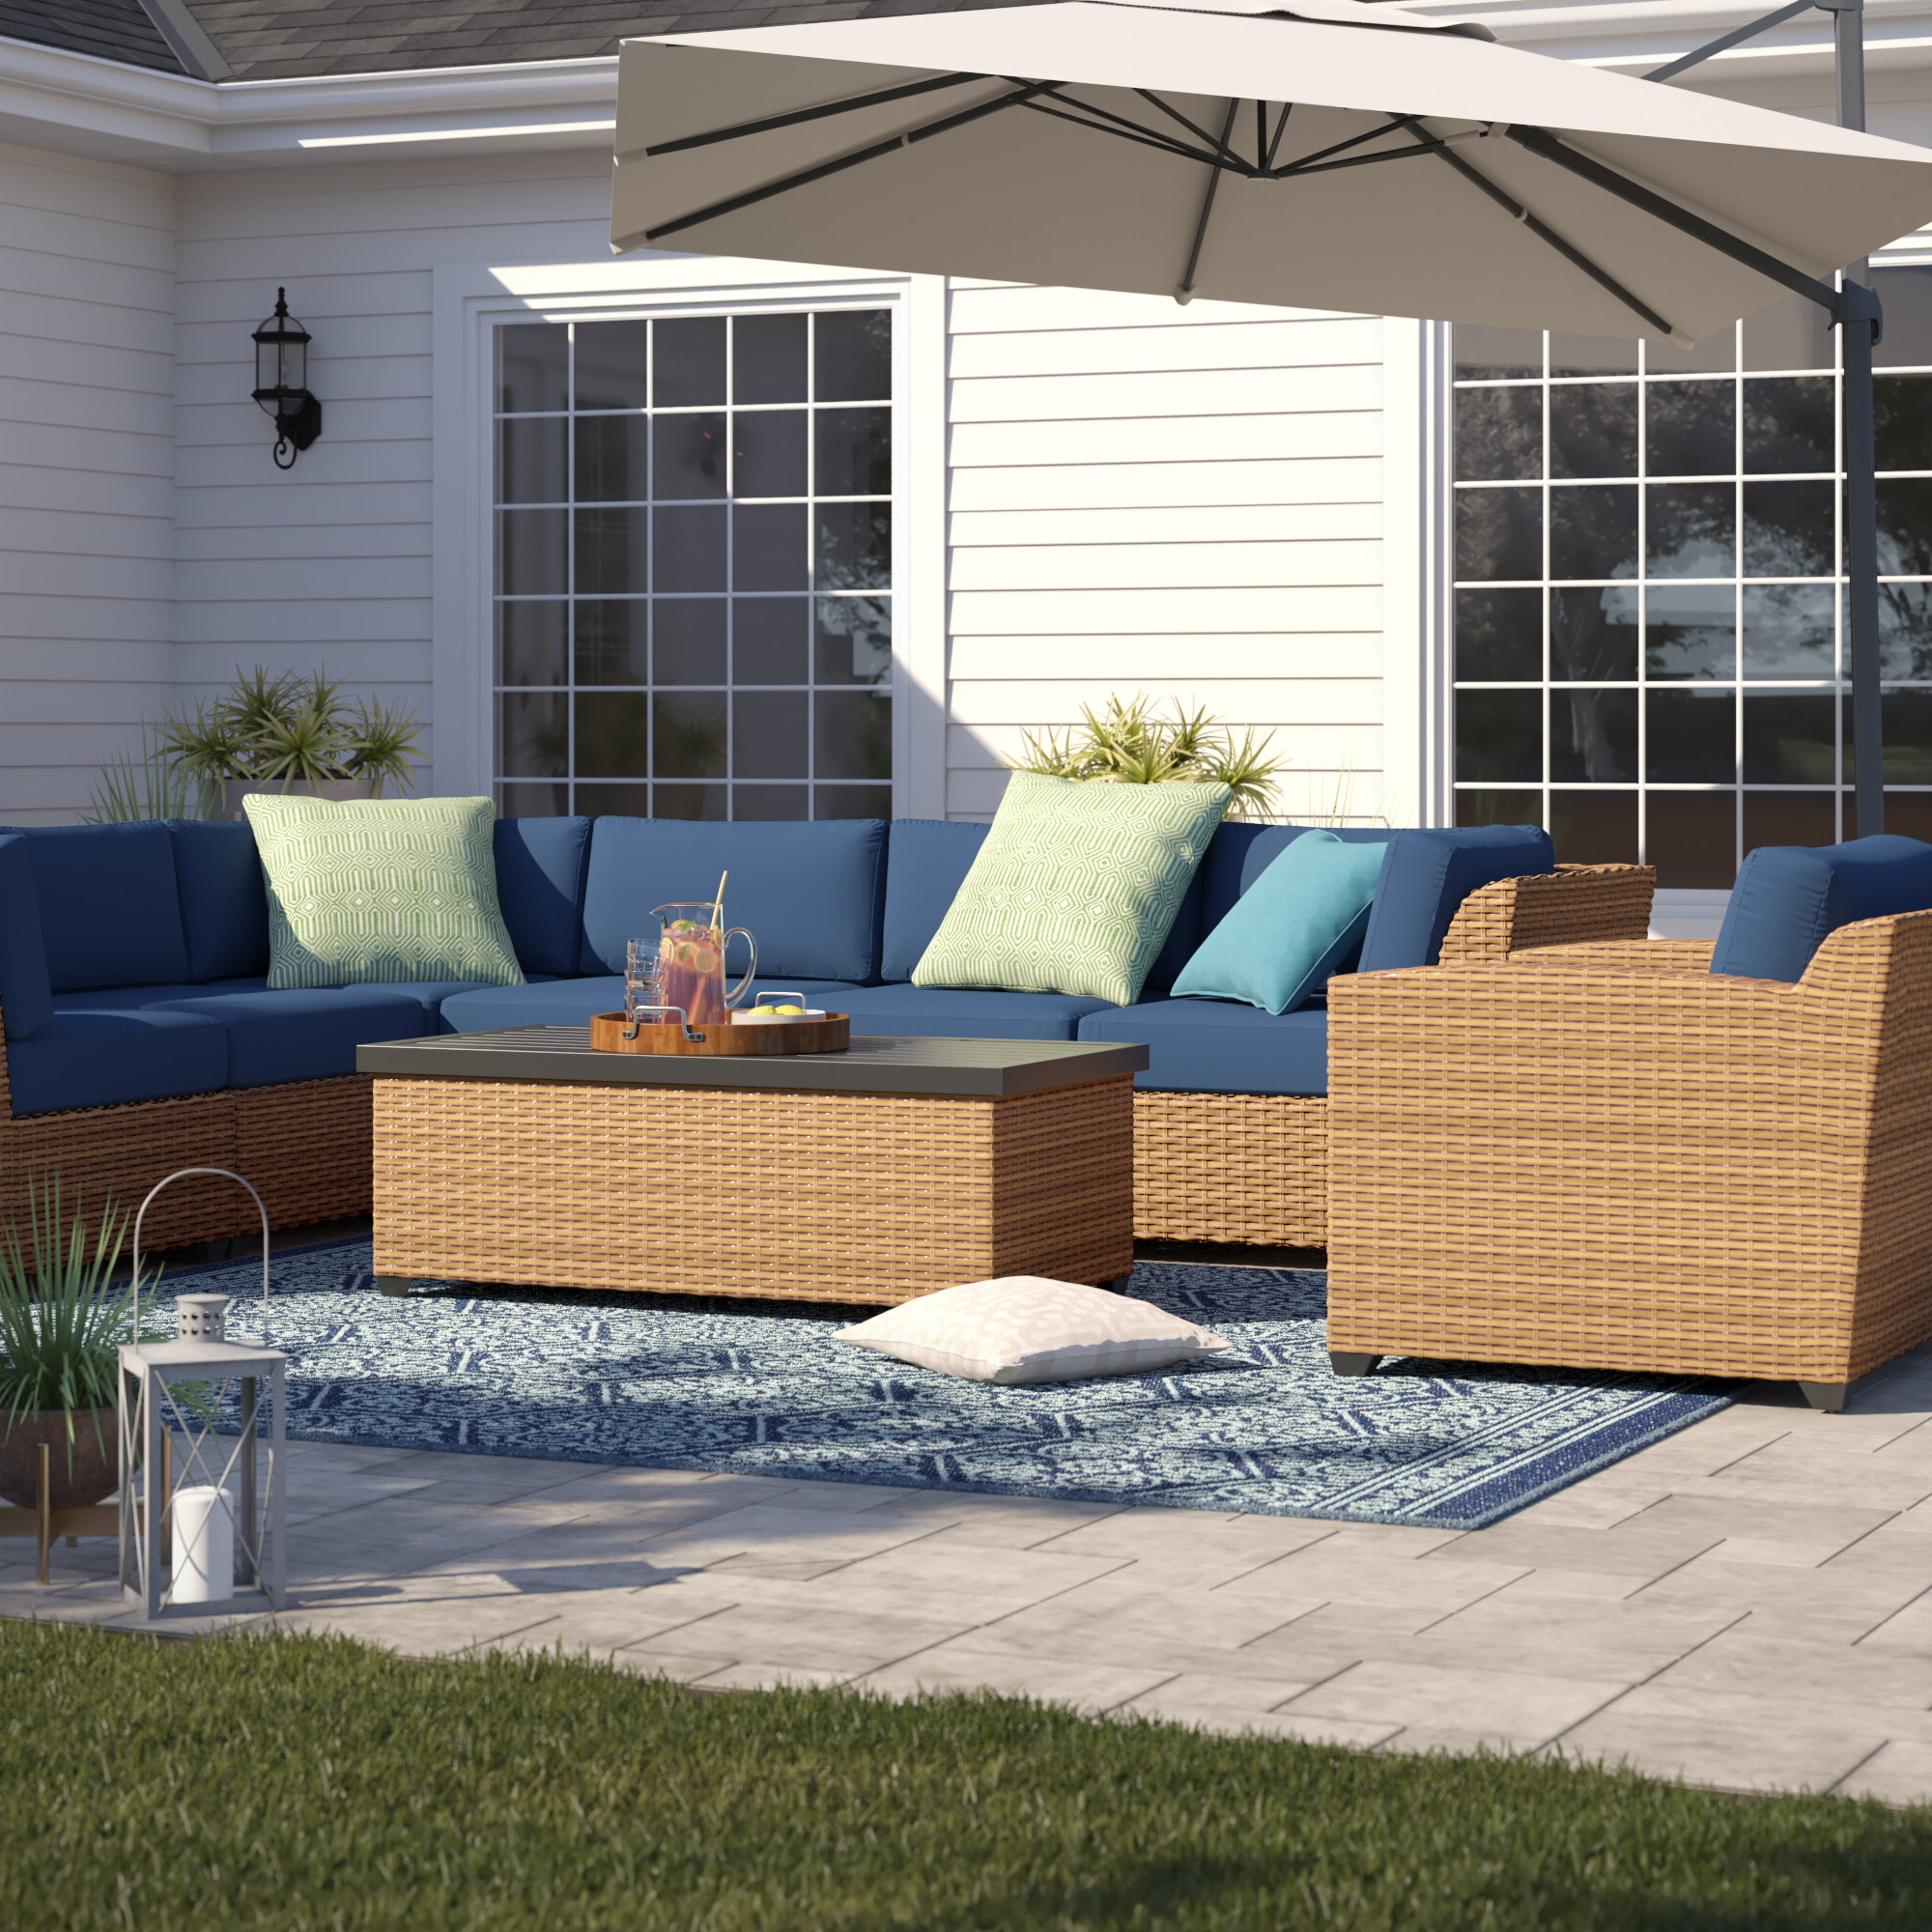 Waterbury Patio Sectionals With Cushions Pertaining To 2019 Waterbury 8 Piece Sectional Seating Group With Cushions (View 12 of 25)